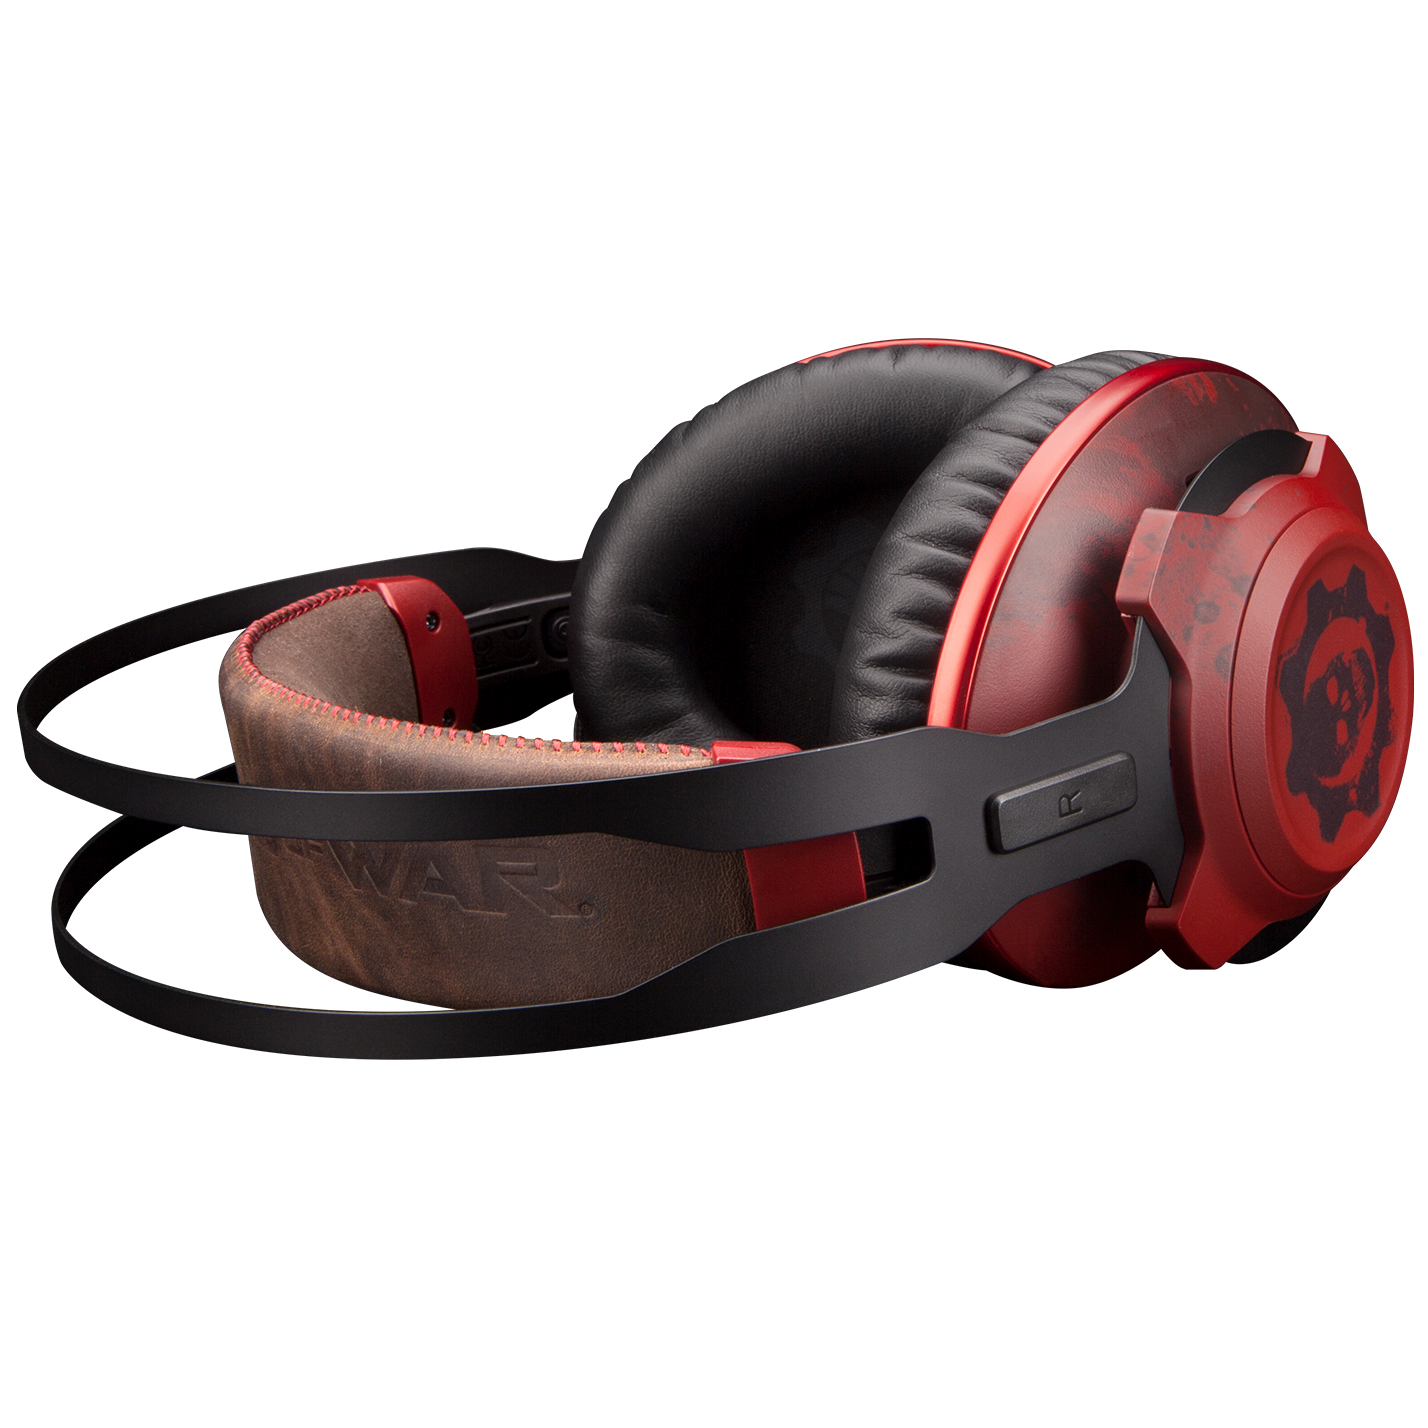 HyperX CloudX Revolver Gears of War Gaming Headset top view